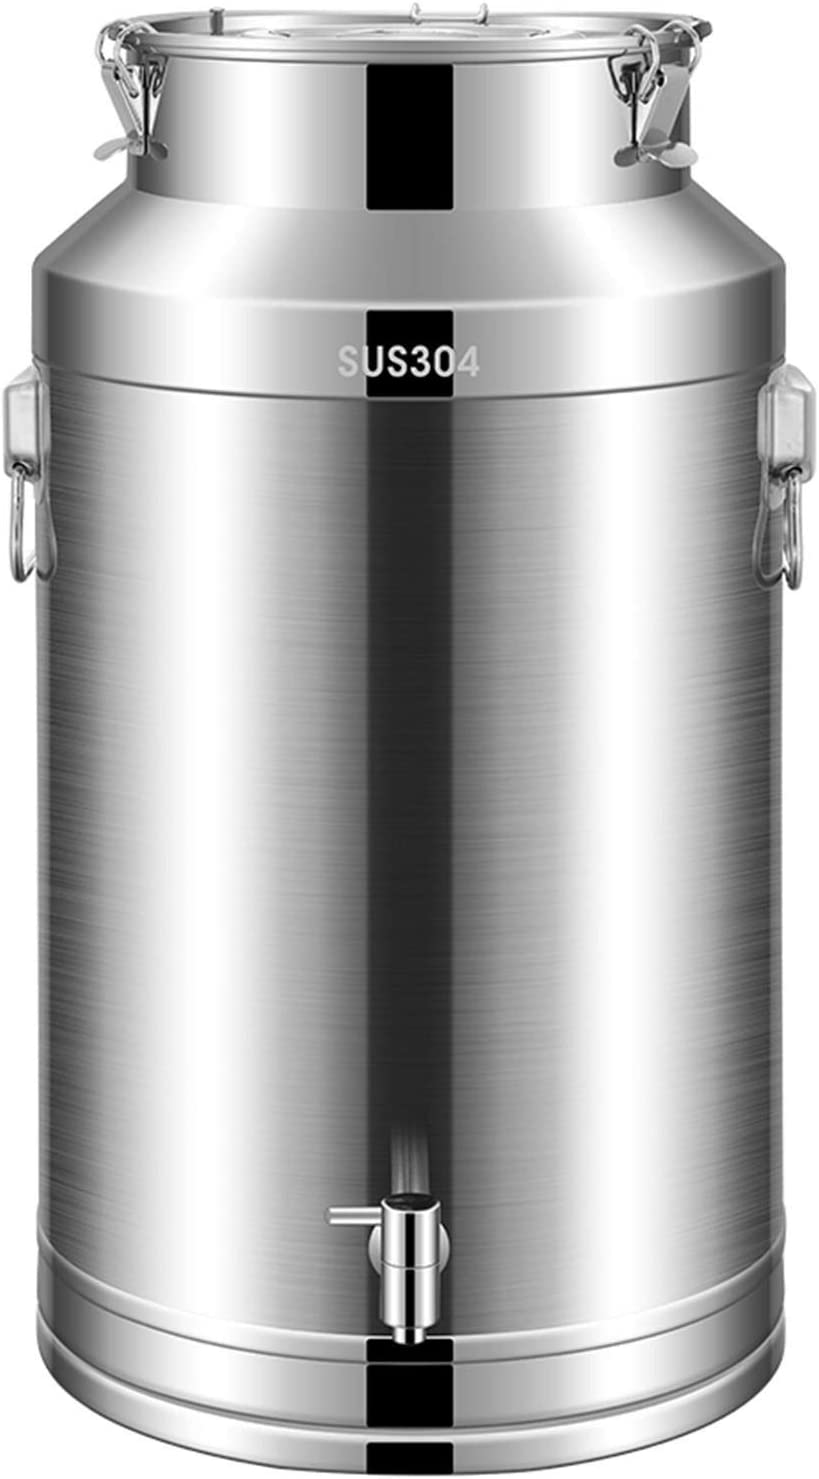 cheap New Free Shipping 304 Stainless Steel Storage Containers Fe Canister Airtight Wine